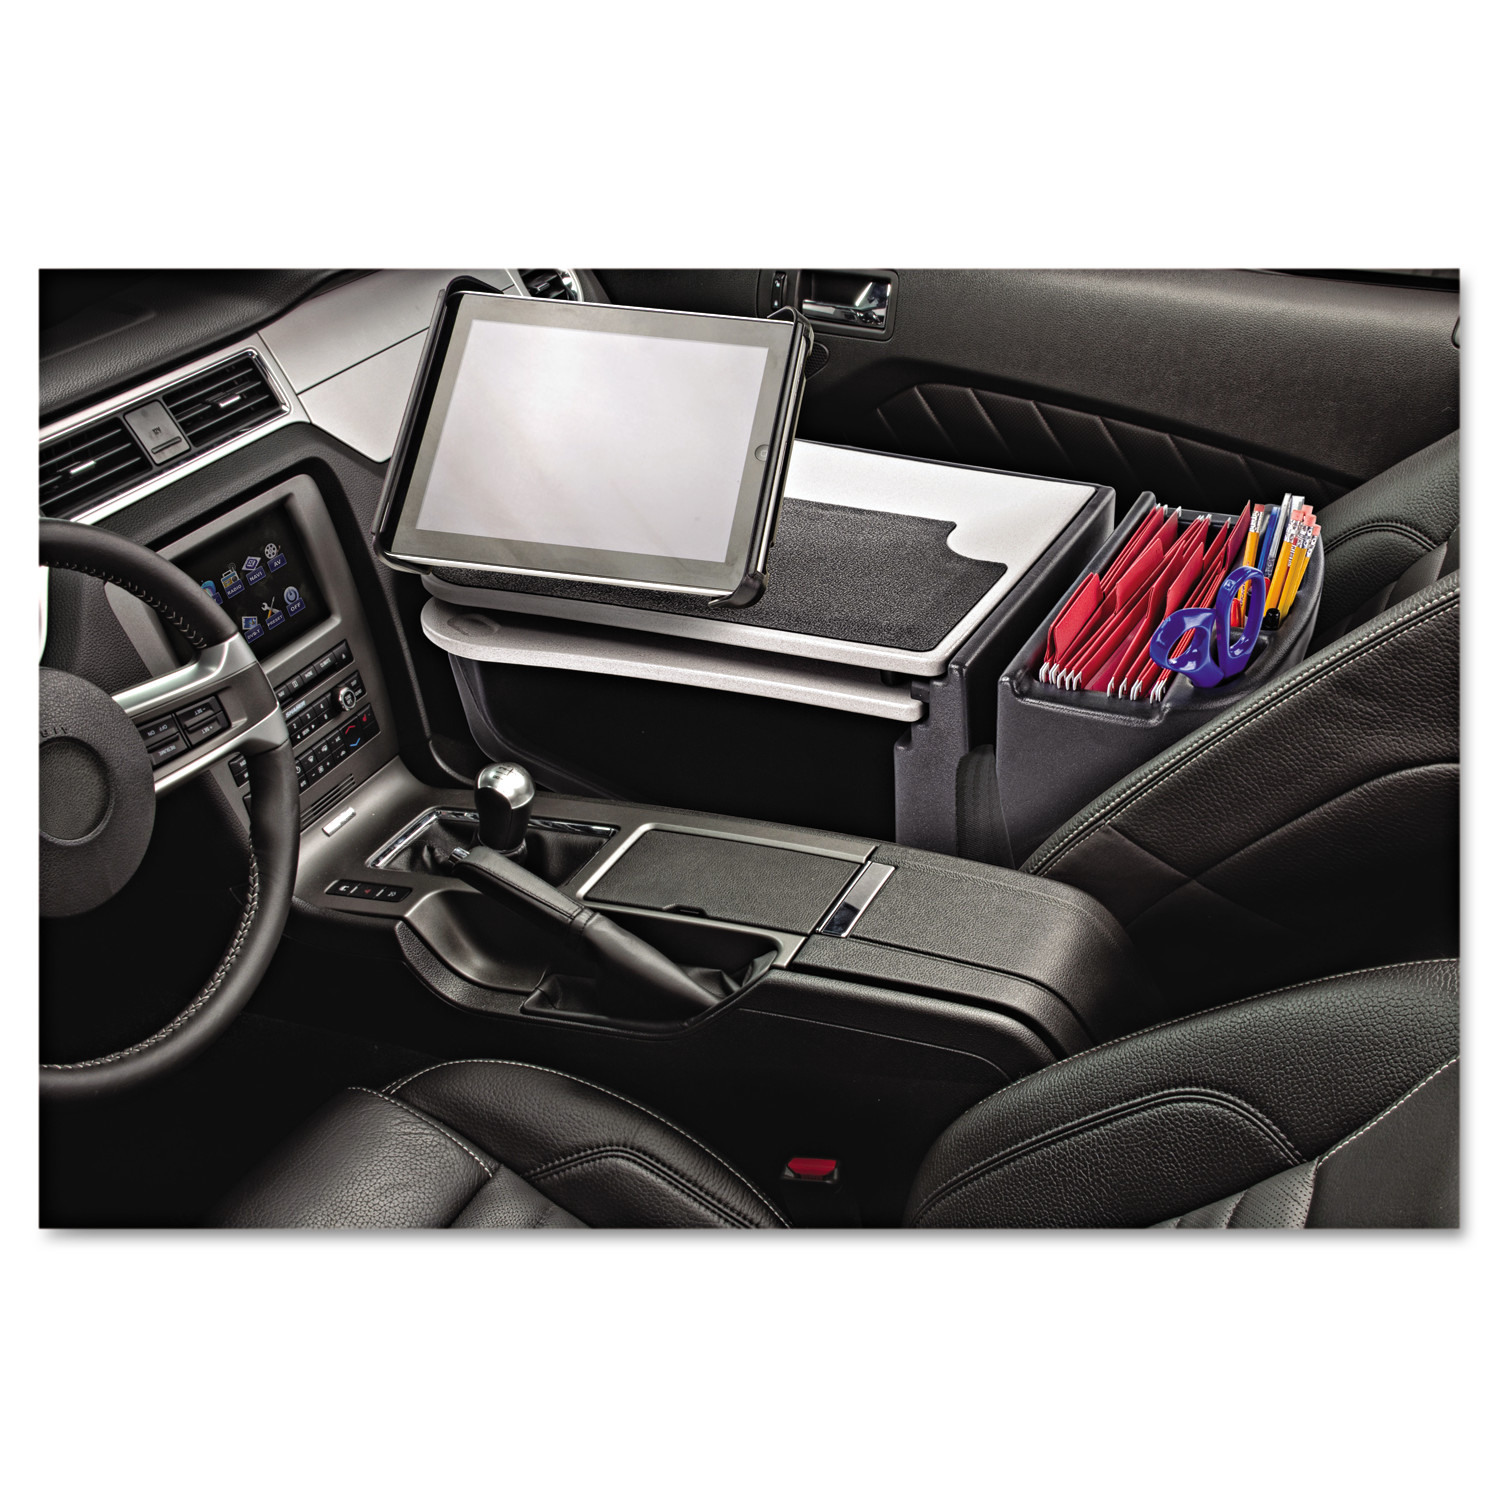 AutoExec GripMaster 03 Auto Desk with iPad Tablet Mount, Supply Organizer, Gray